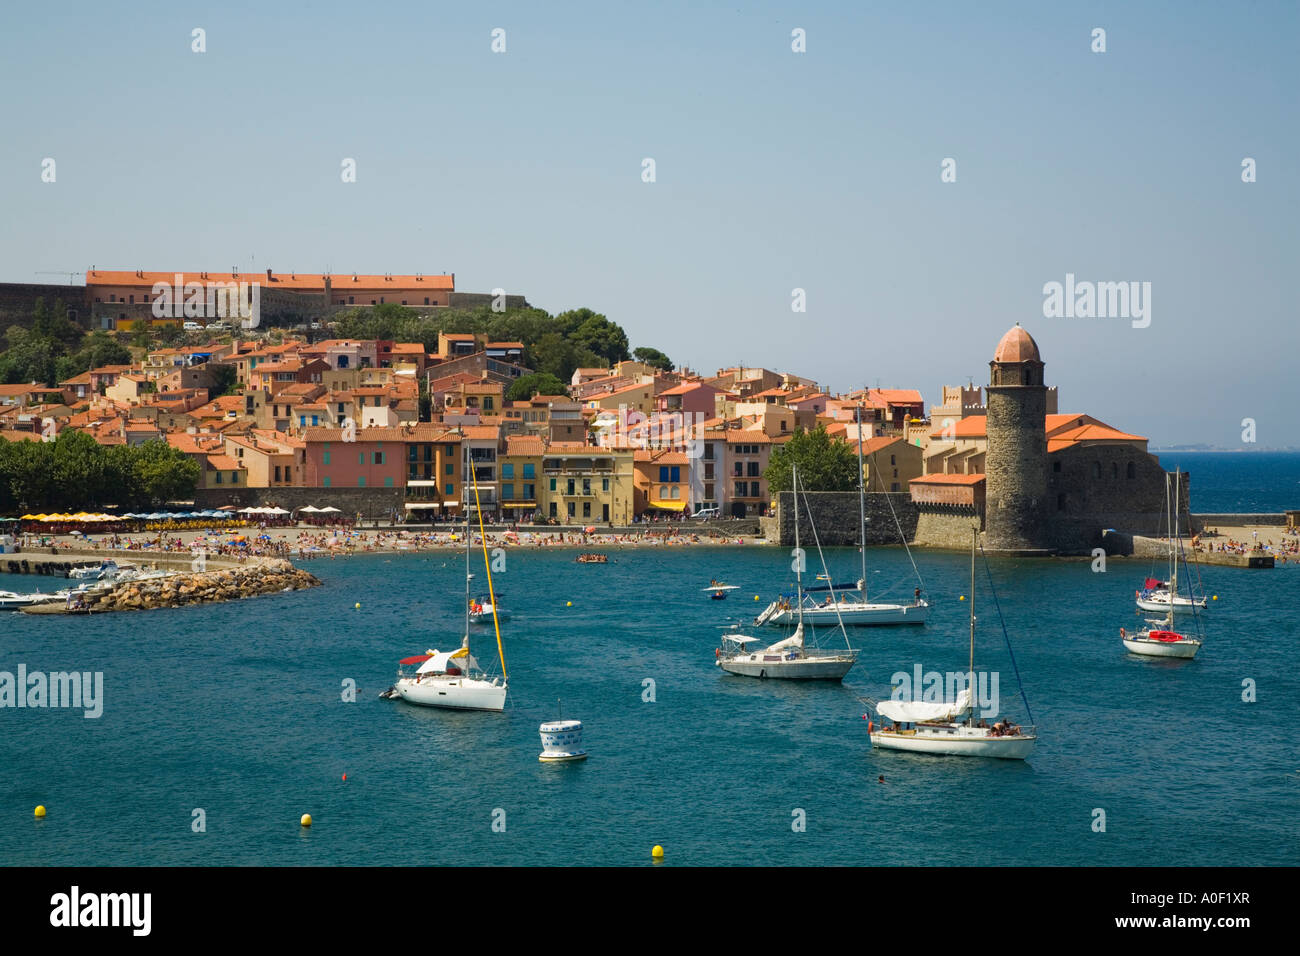 Collioure, Lanquedoc-Rousillon, France Stock Photo